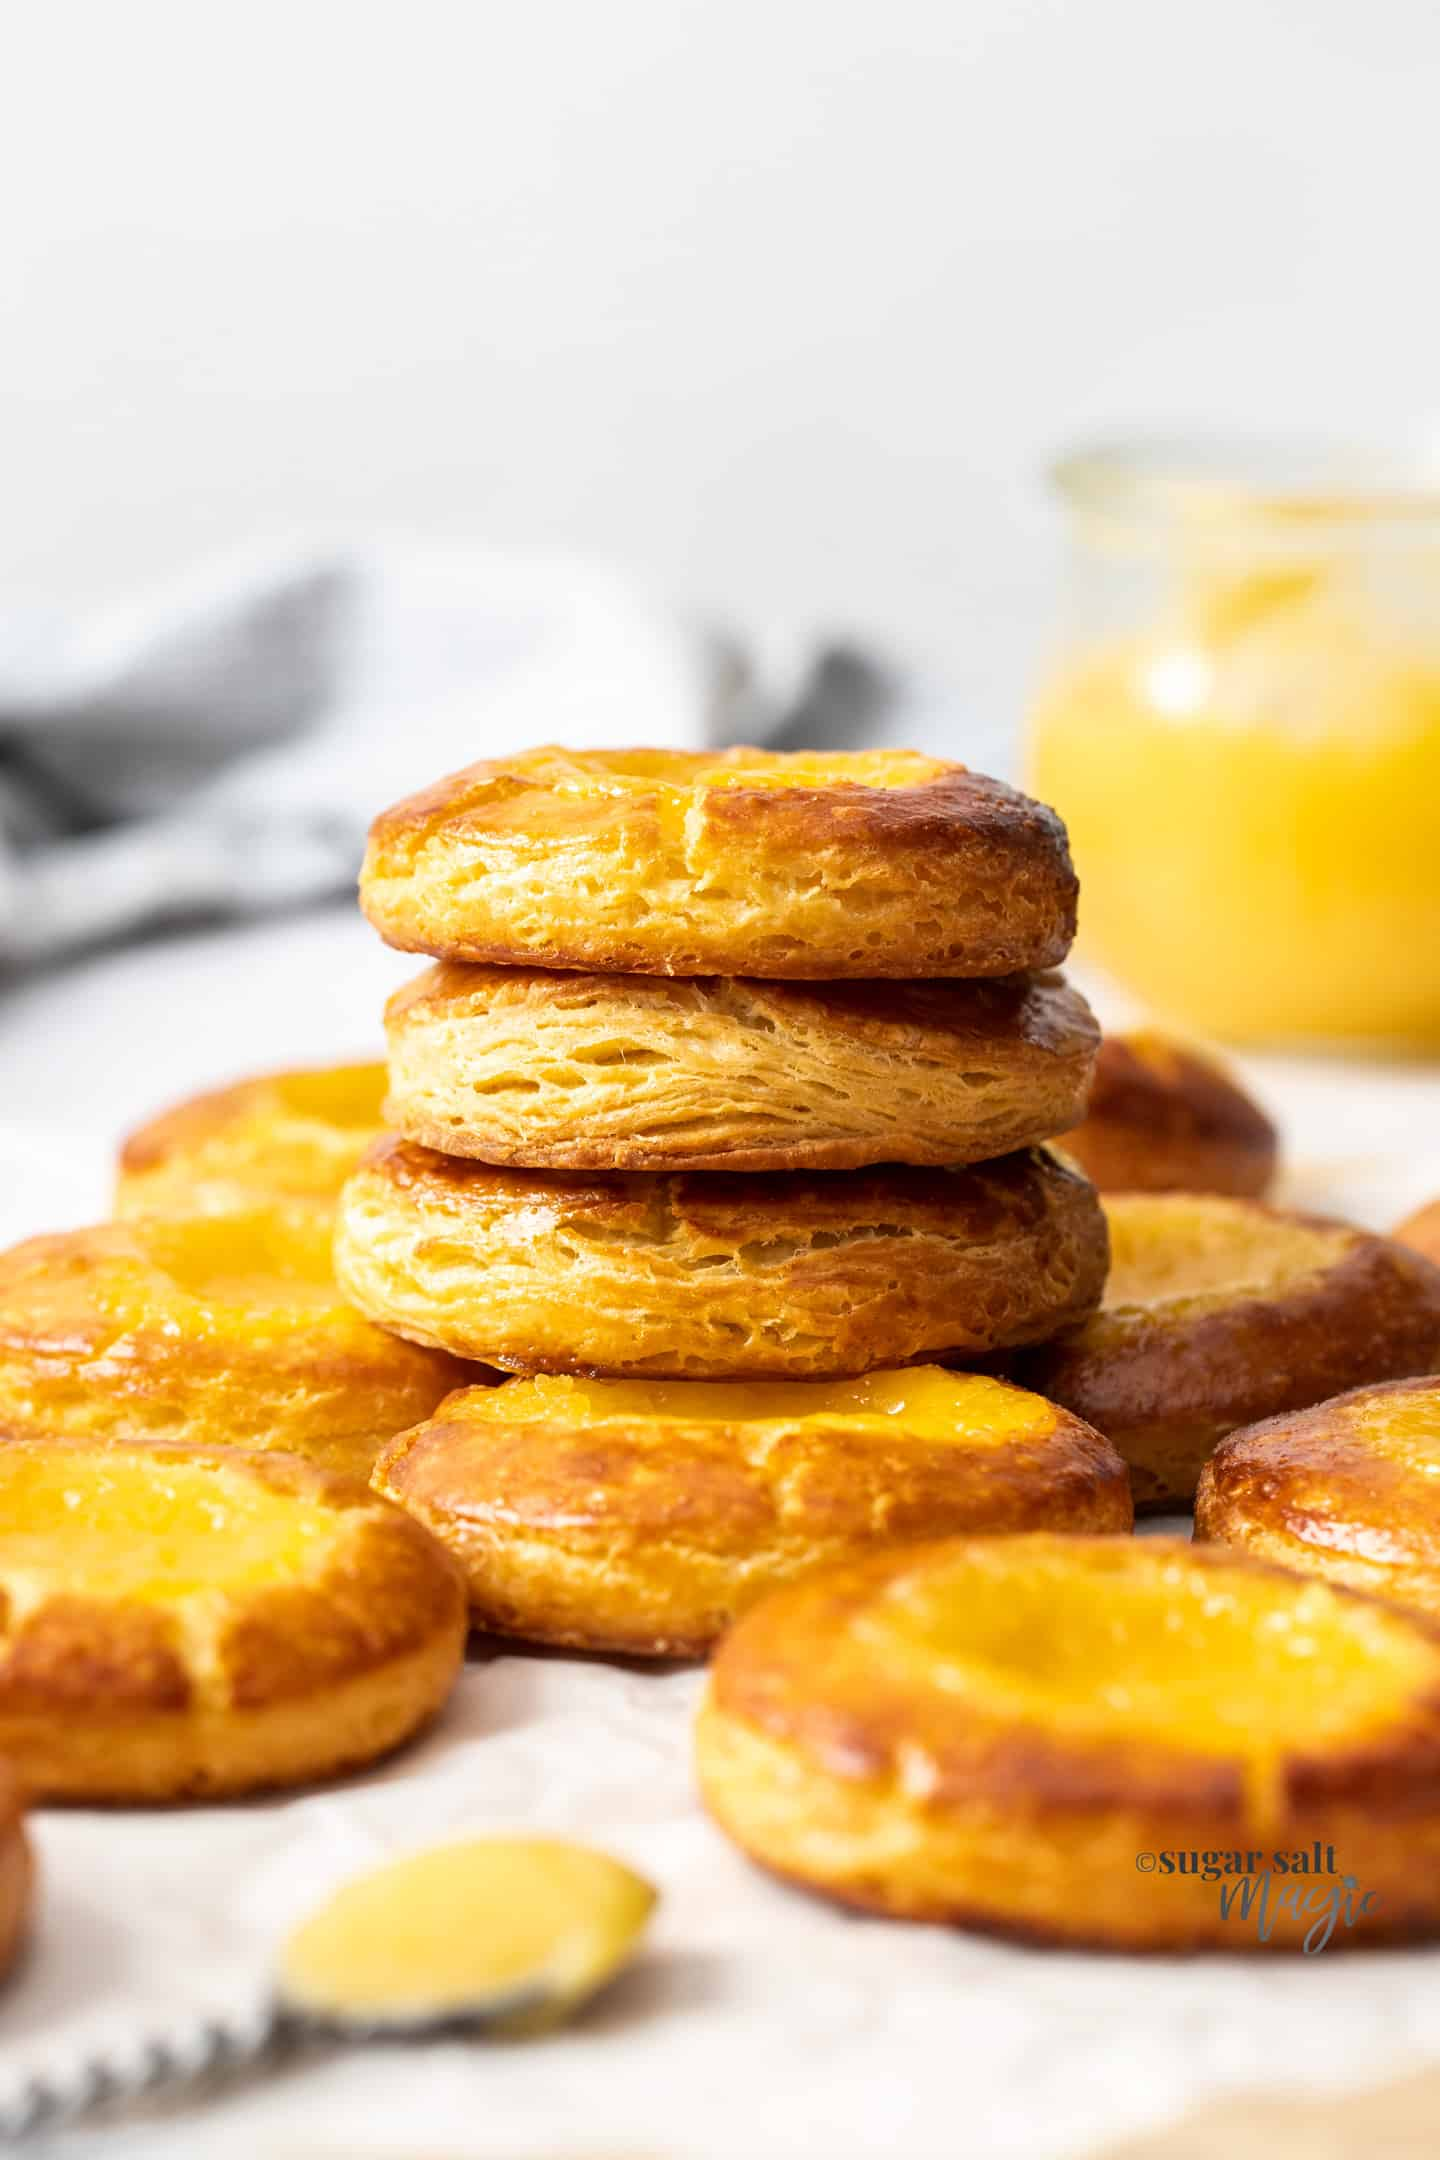 A stack of lemon curd pastries showing the layers on the sides.